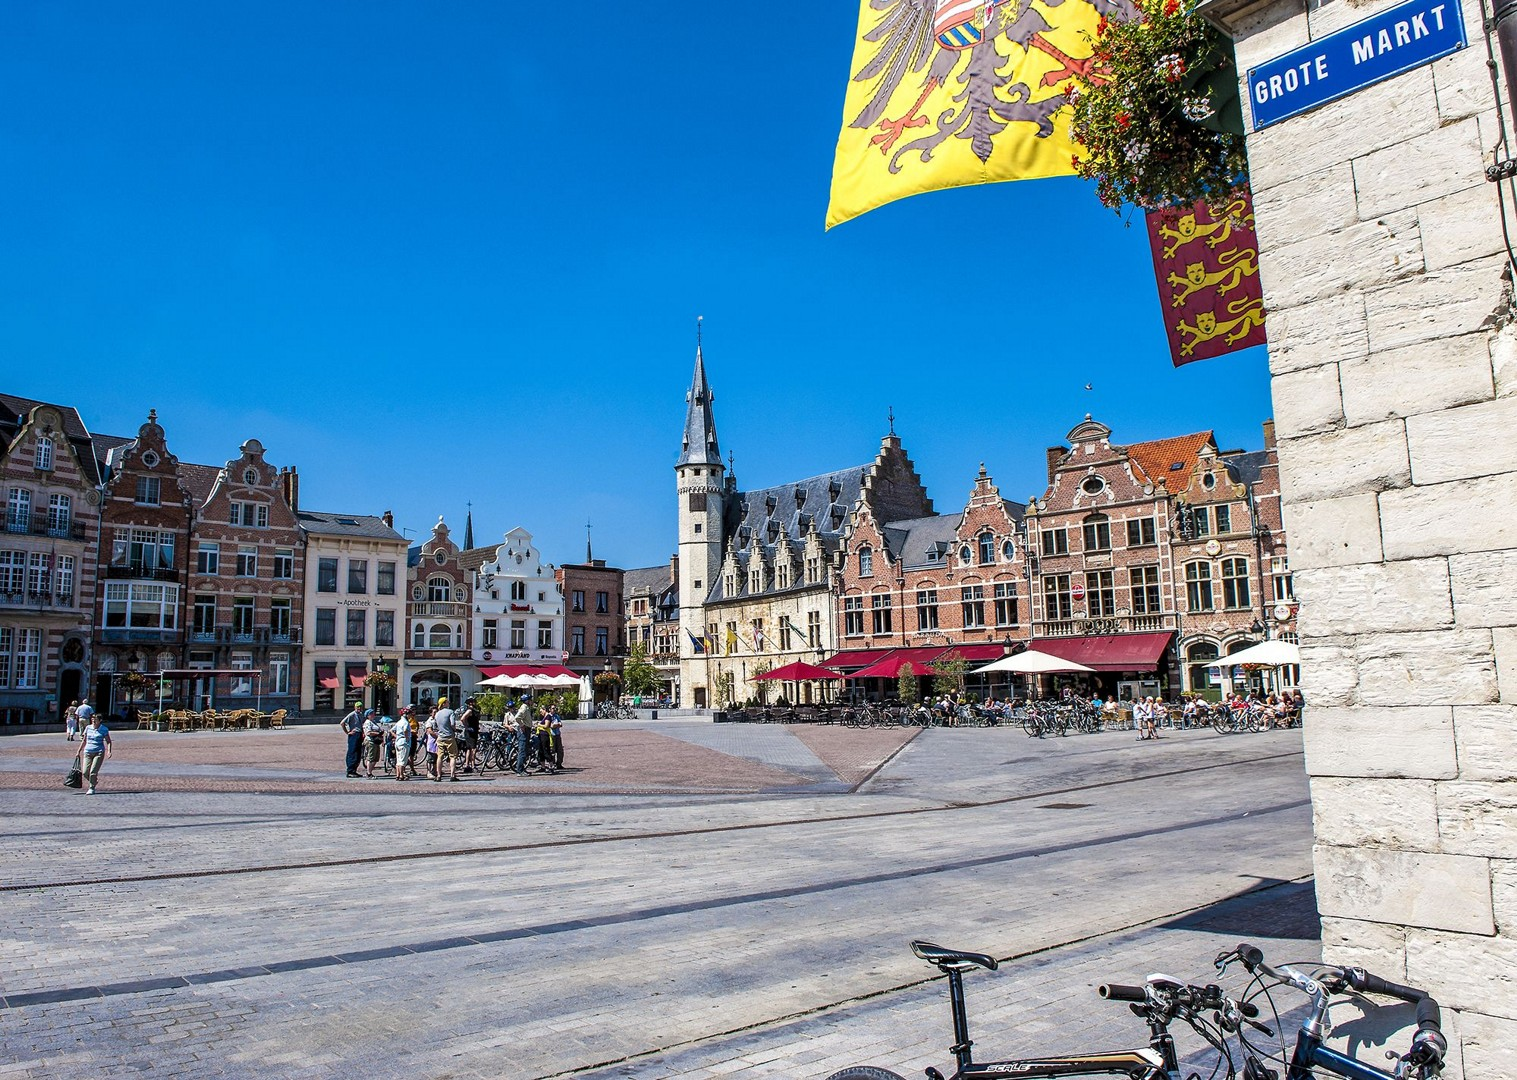 cycle-tours-holland-belgium-grote-markt-culture-food.jpg - Holland and Belgium - Bruges to Amsterdam - Bike and Barge Holiday - Leisure Cycling